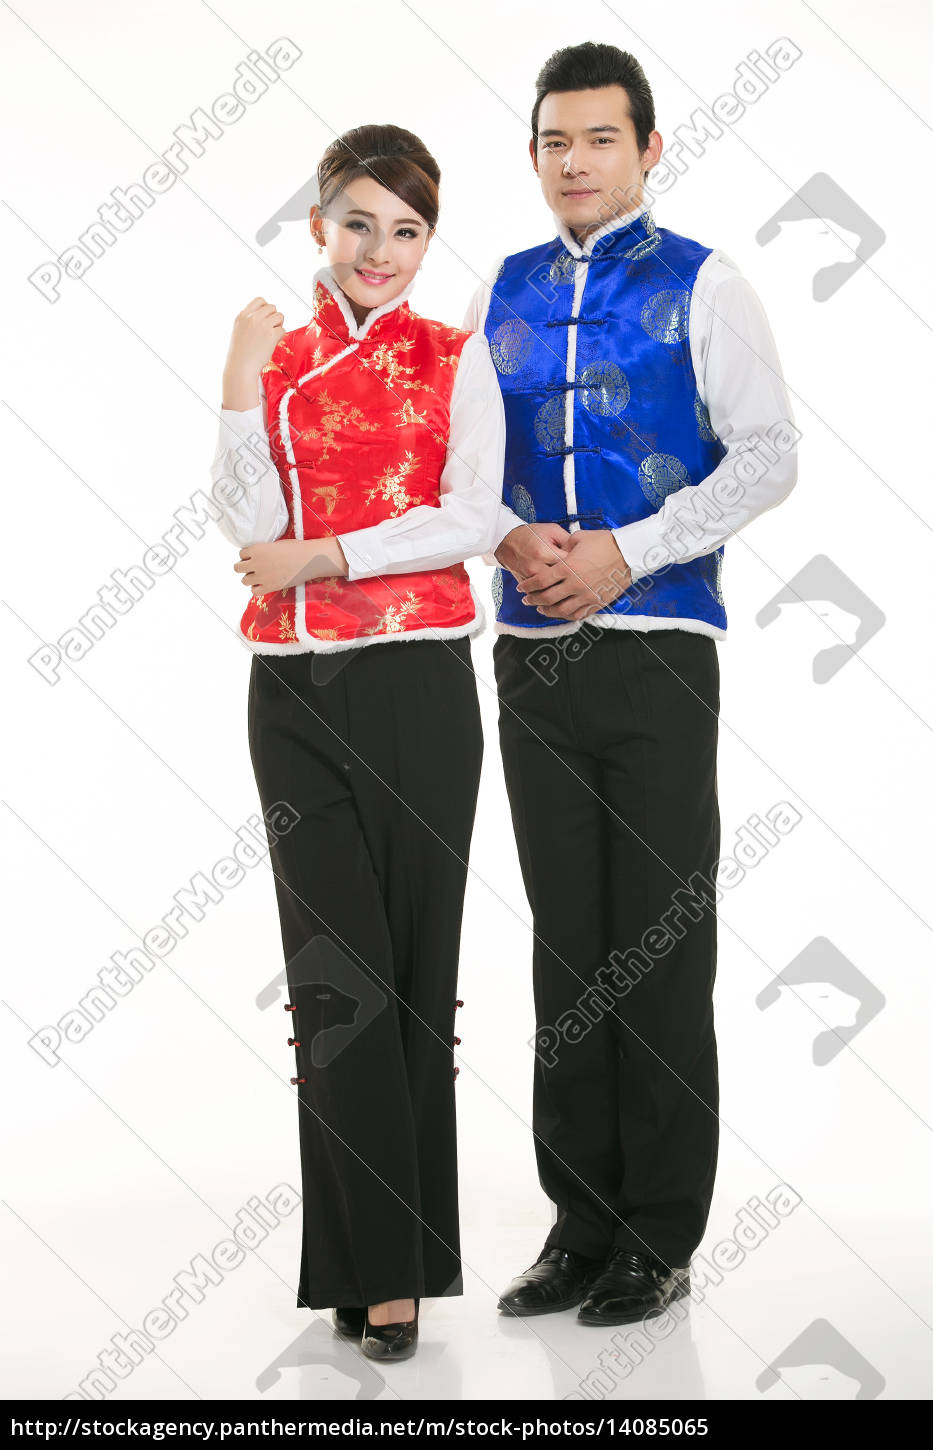 wearing, chinese, clothing, waiter, in, front - 14085065